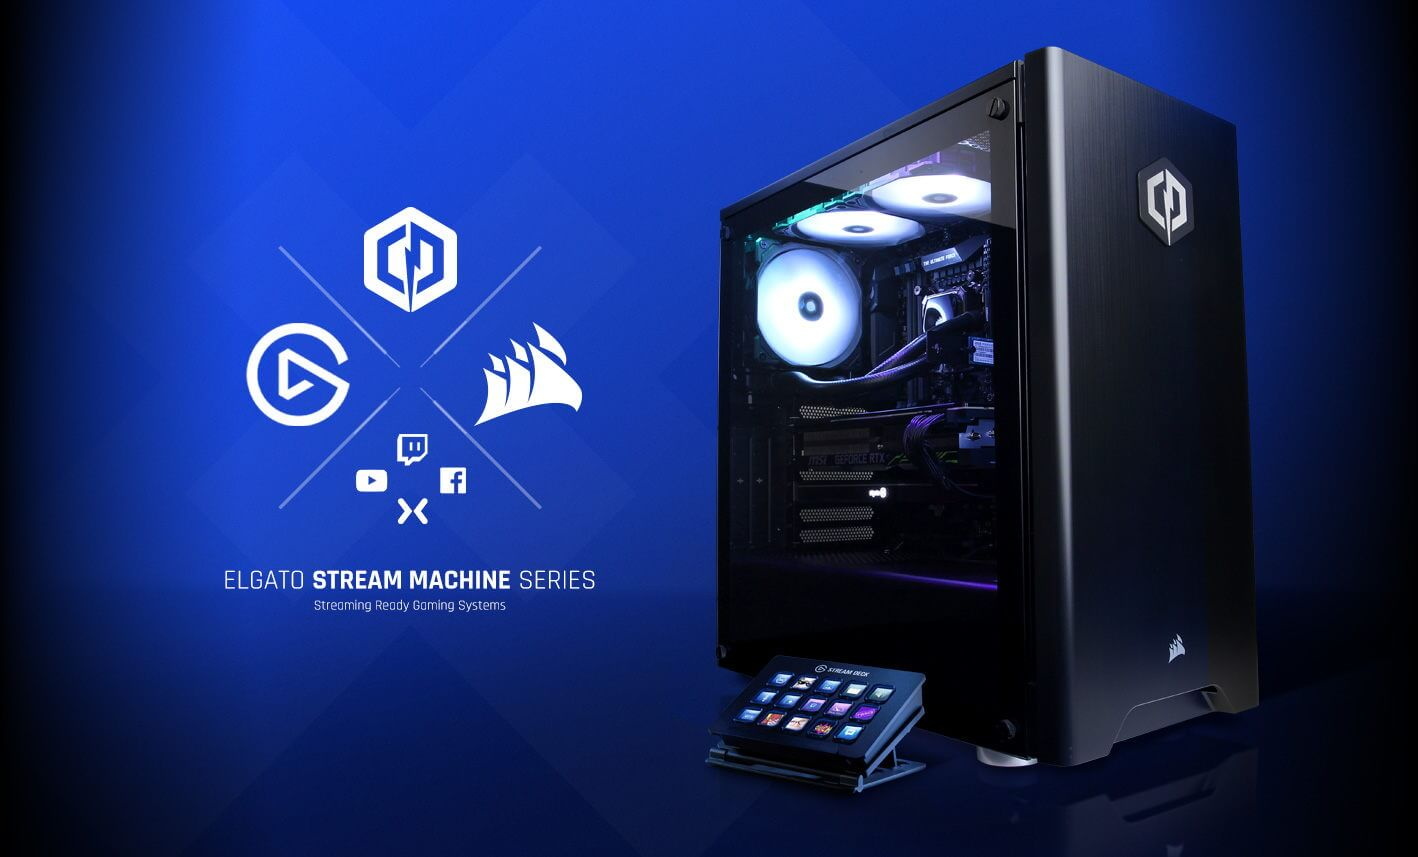 Elgato Stream Machine